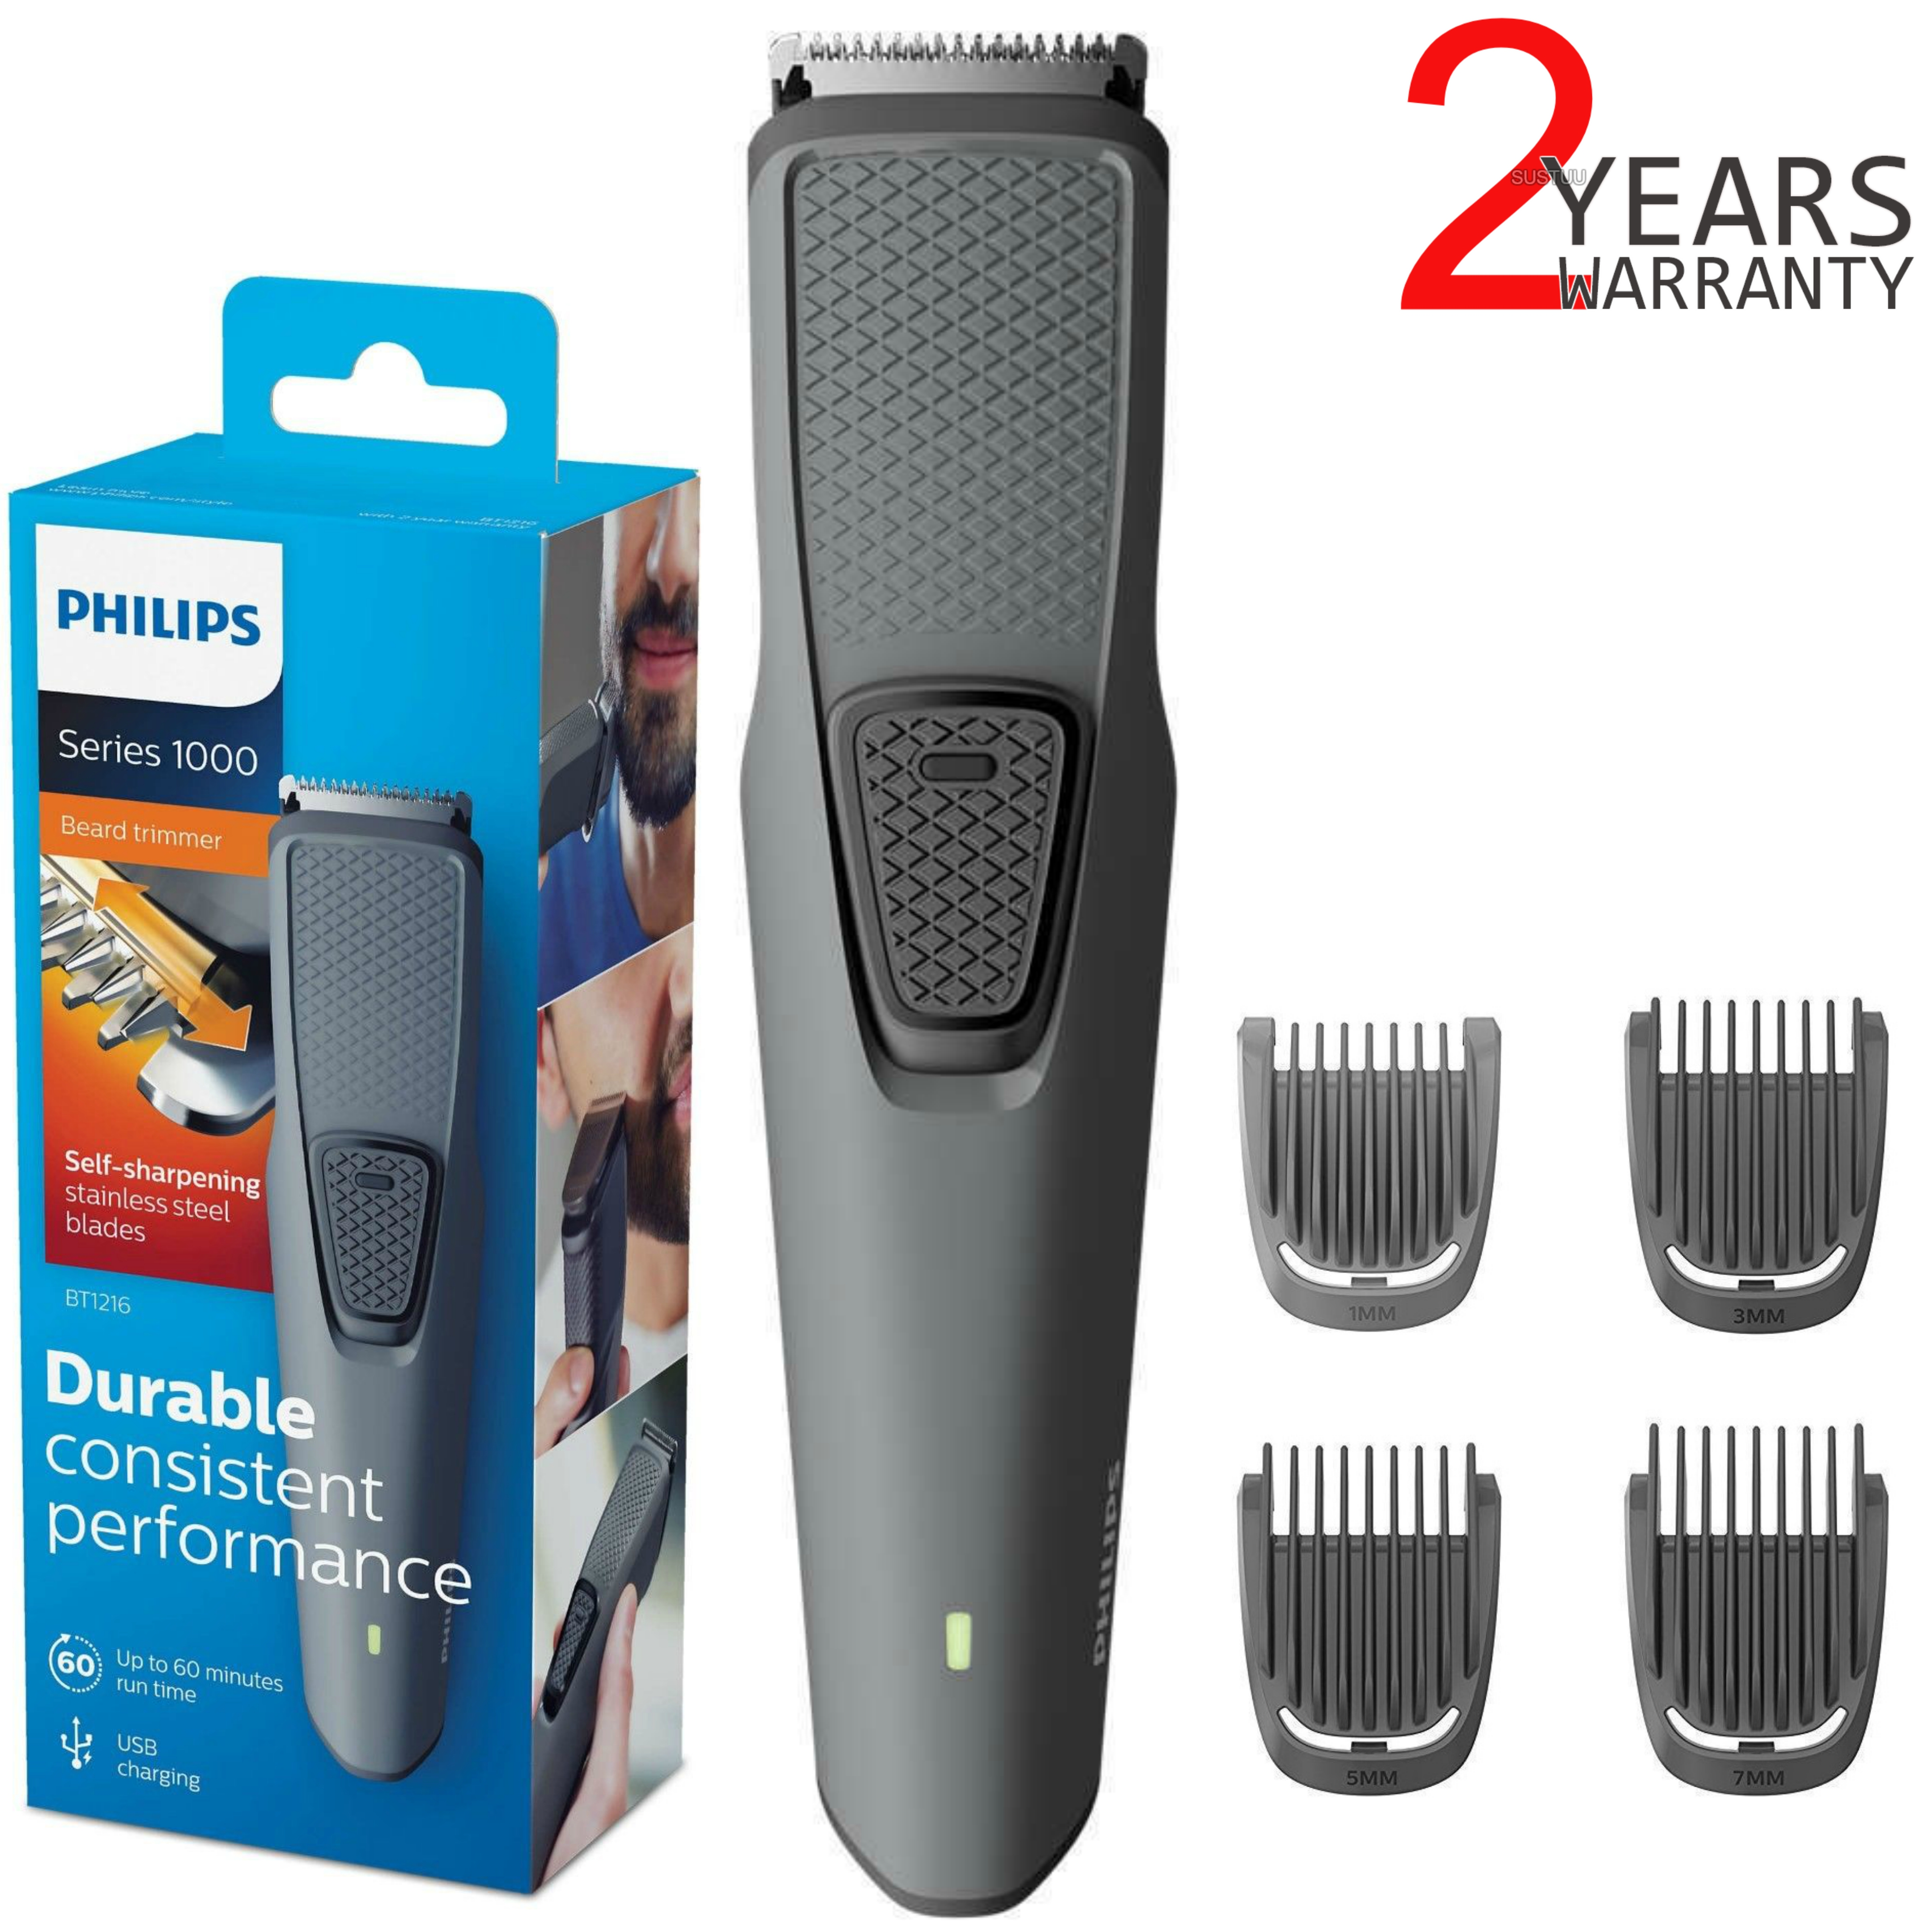 Philips BT1216/15 Series 1000 Beard-Stubble Trimmer | Cordless | USB Charging | Black